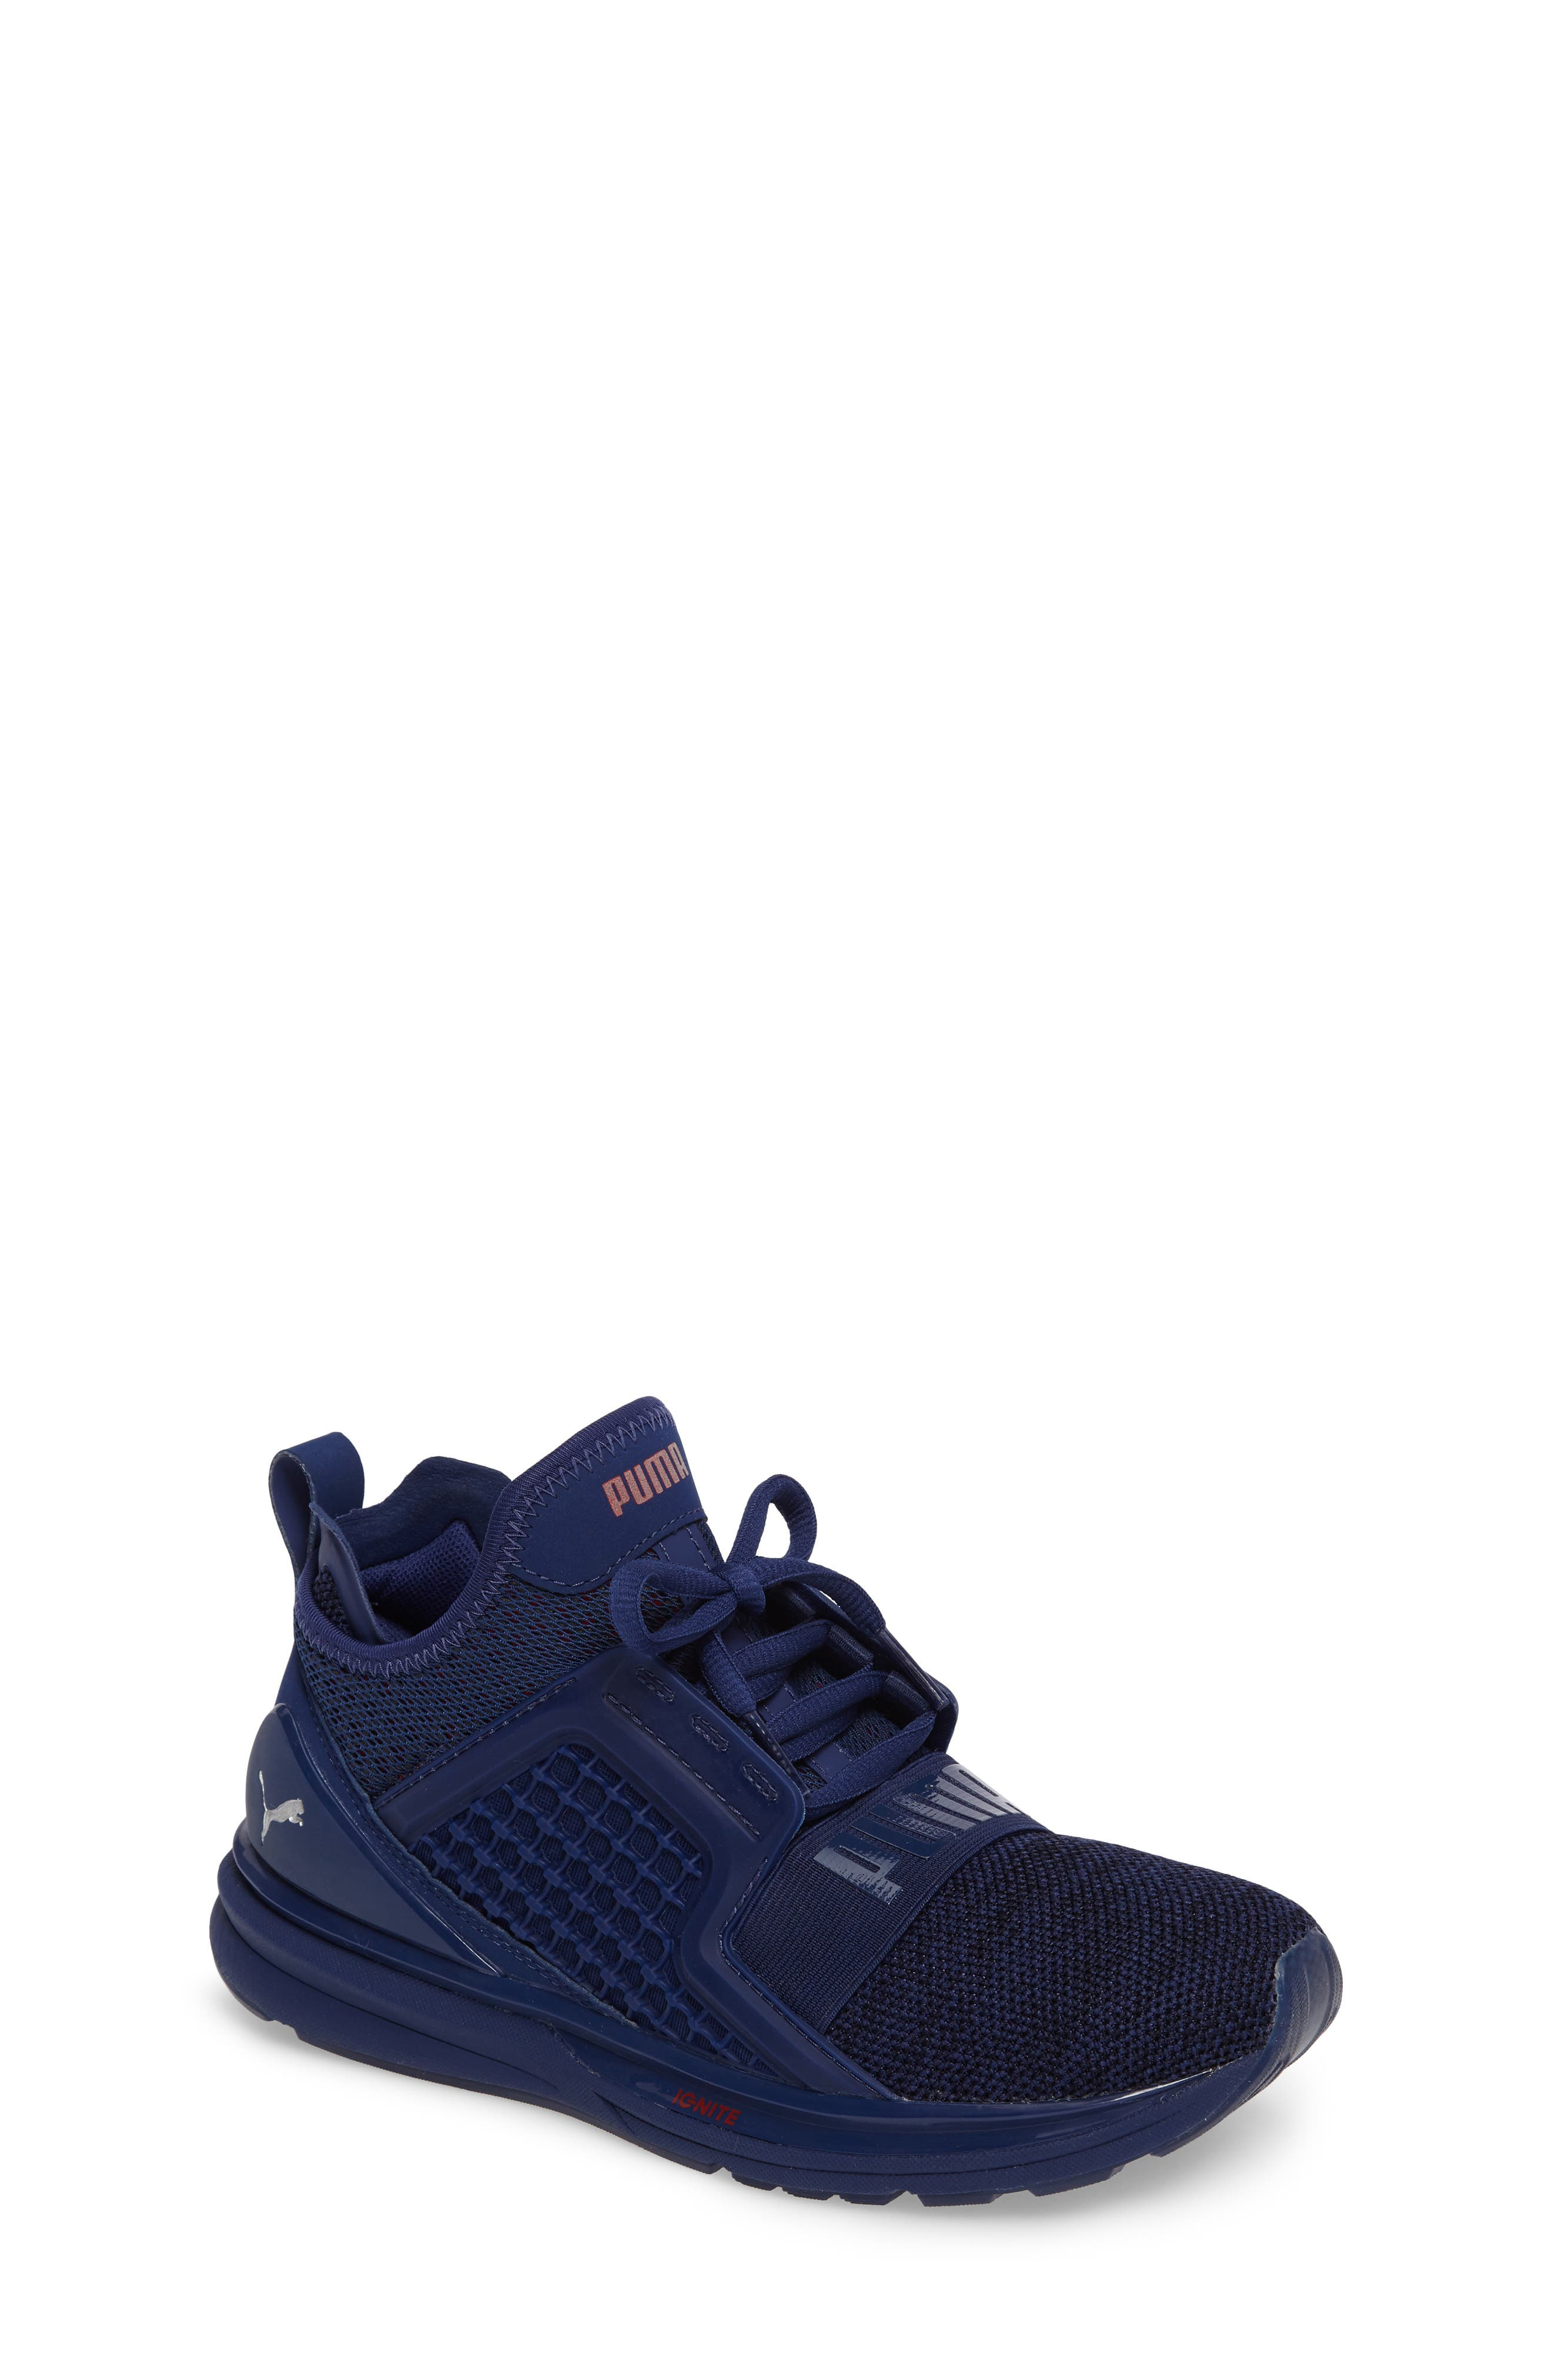 Alternate Image 1 Selected - PUMA Ignite Limitless Sneaker (Big Kid)